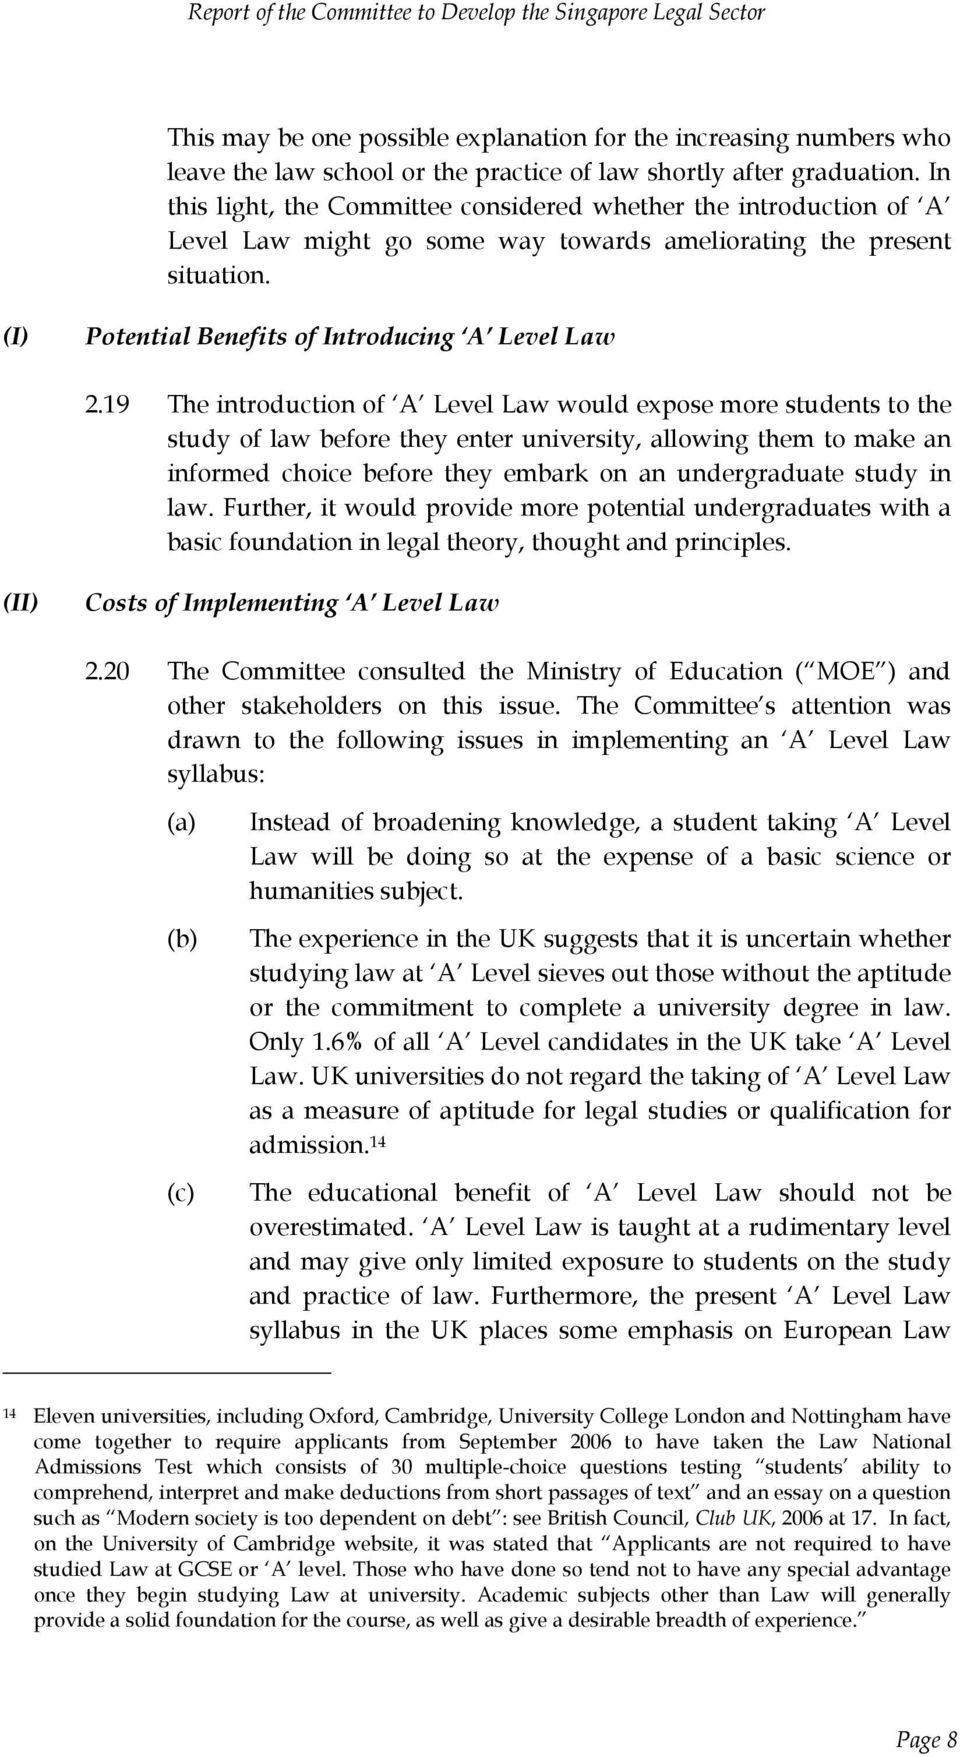 19 The introduction of A Level Law would expose more students to the study of law before they enter university, allowing them to make an informed choice before they embark on an undergraduate study